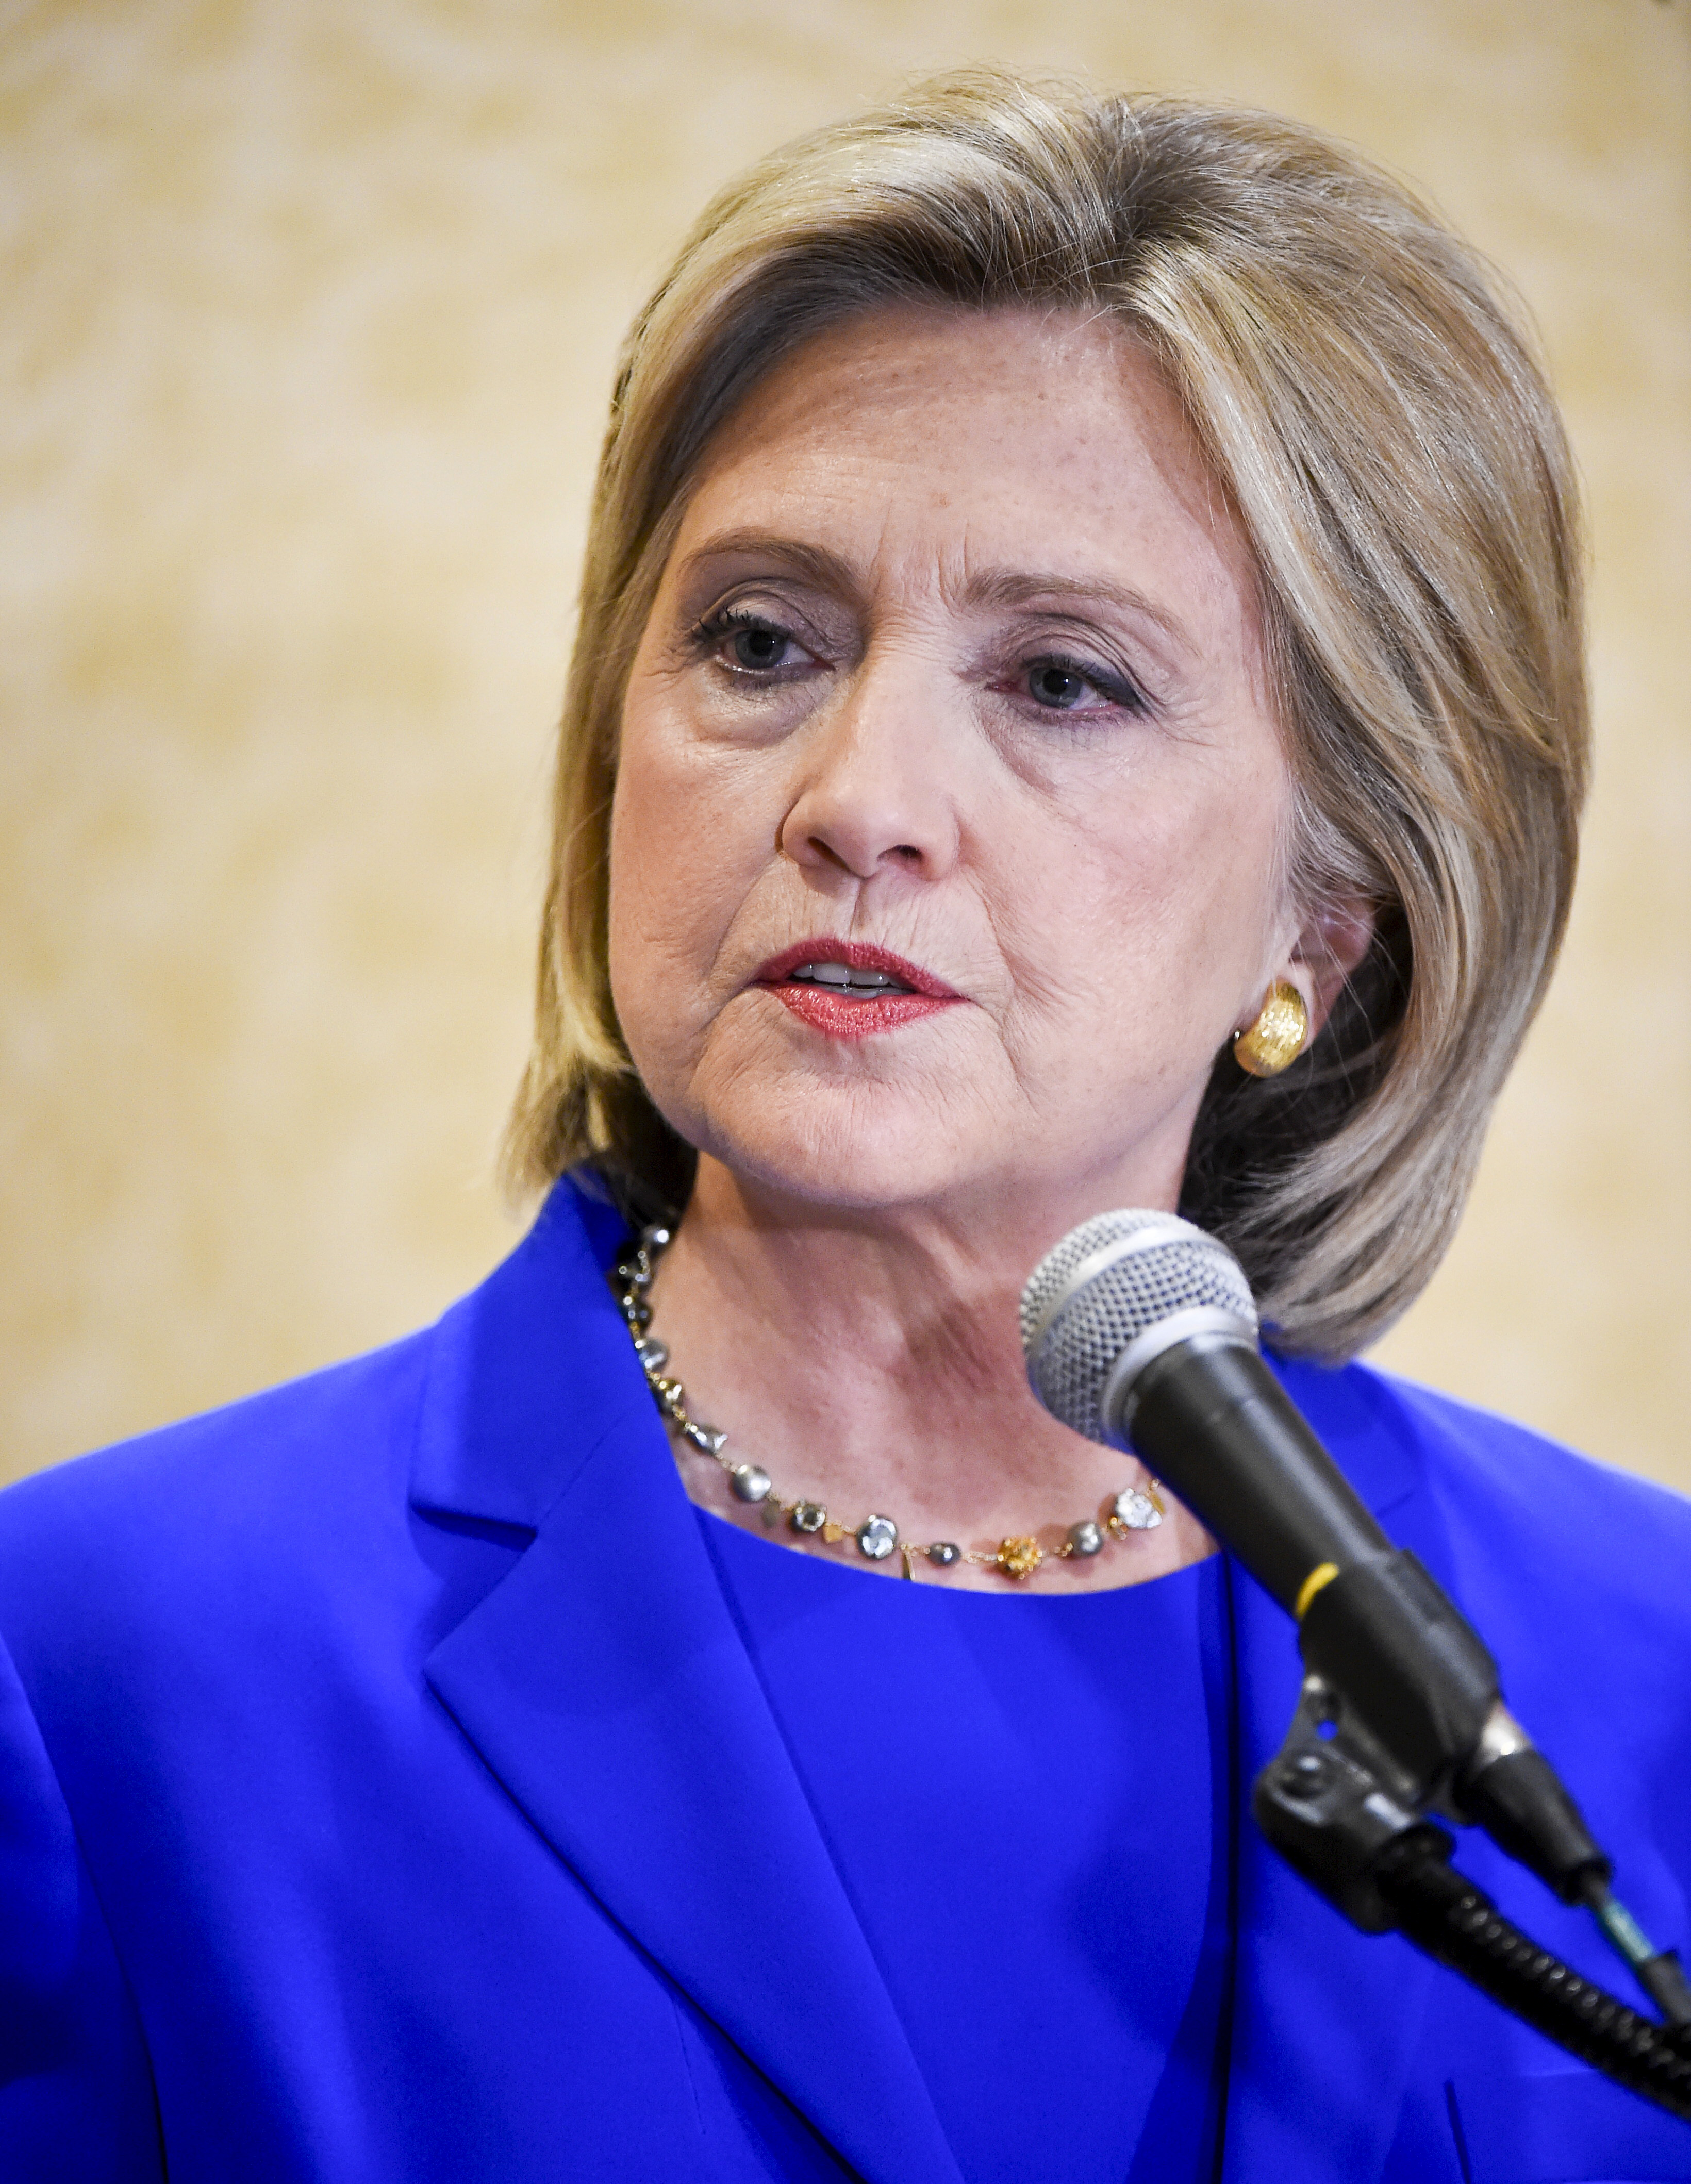 Democratic presidential candidate Hillary Clinton takes reporters questions during a news conference after she addressed the Democratic National Committee (DNC) Summer Meeting in Minneapolis on Aug. 28, 2015.